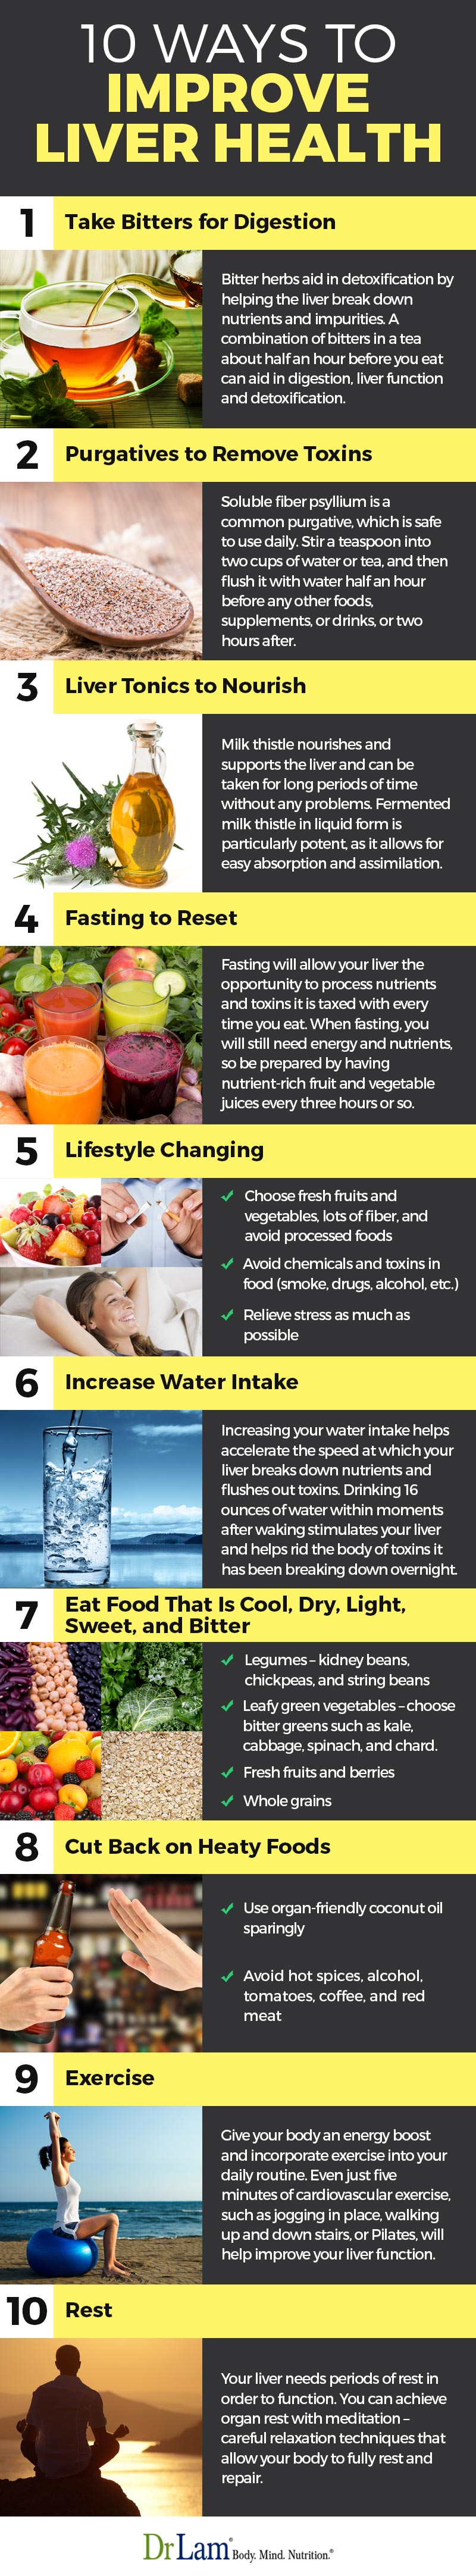 Check out this easy to understand infographic about the 10 ways to improve liver health